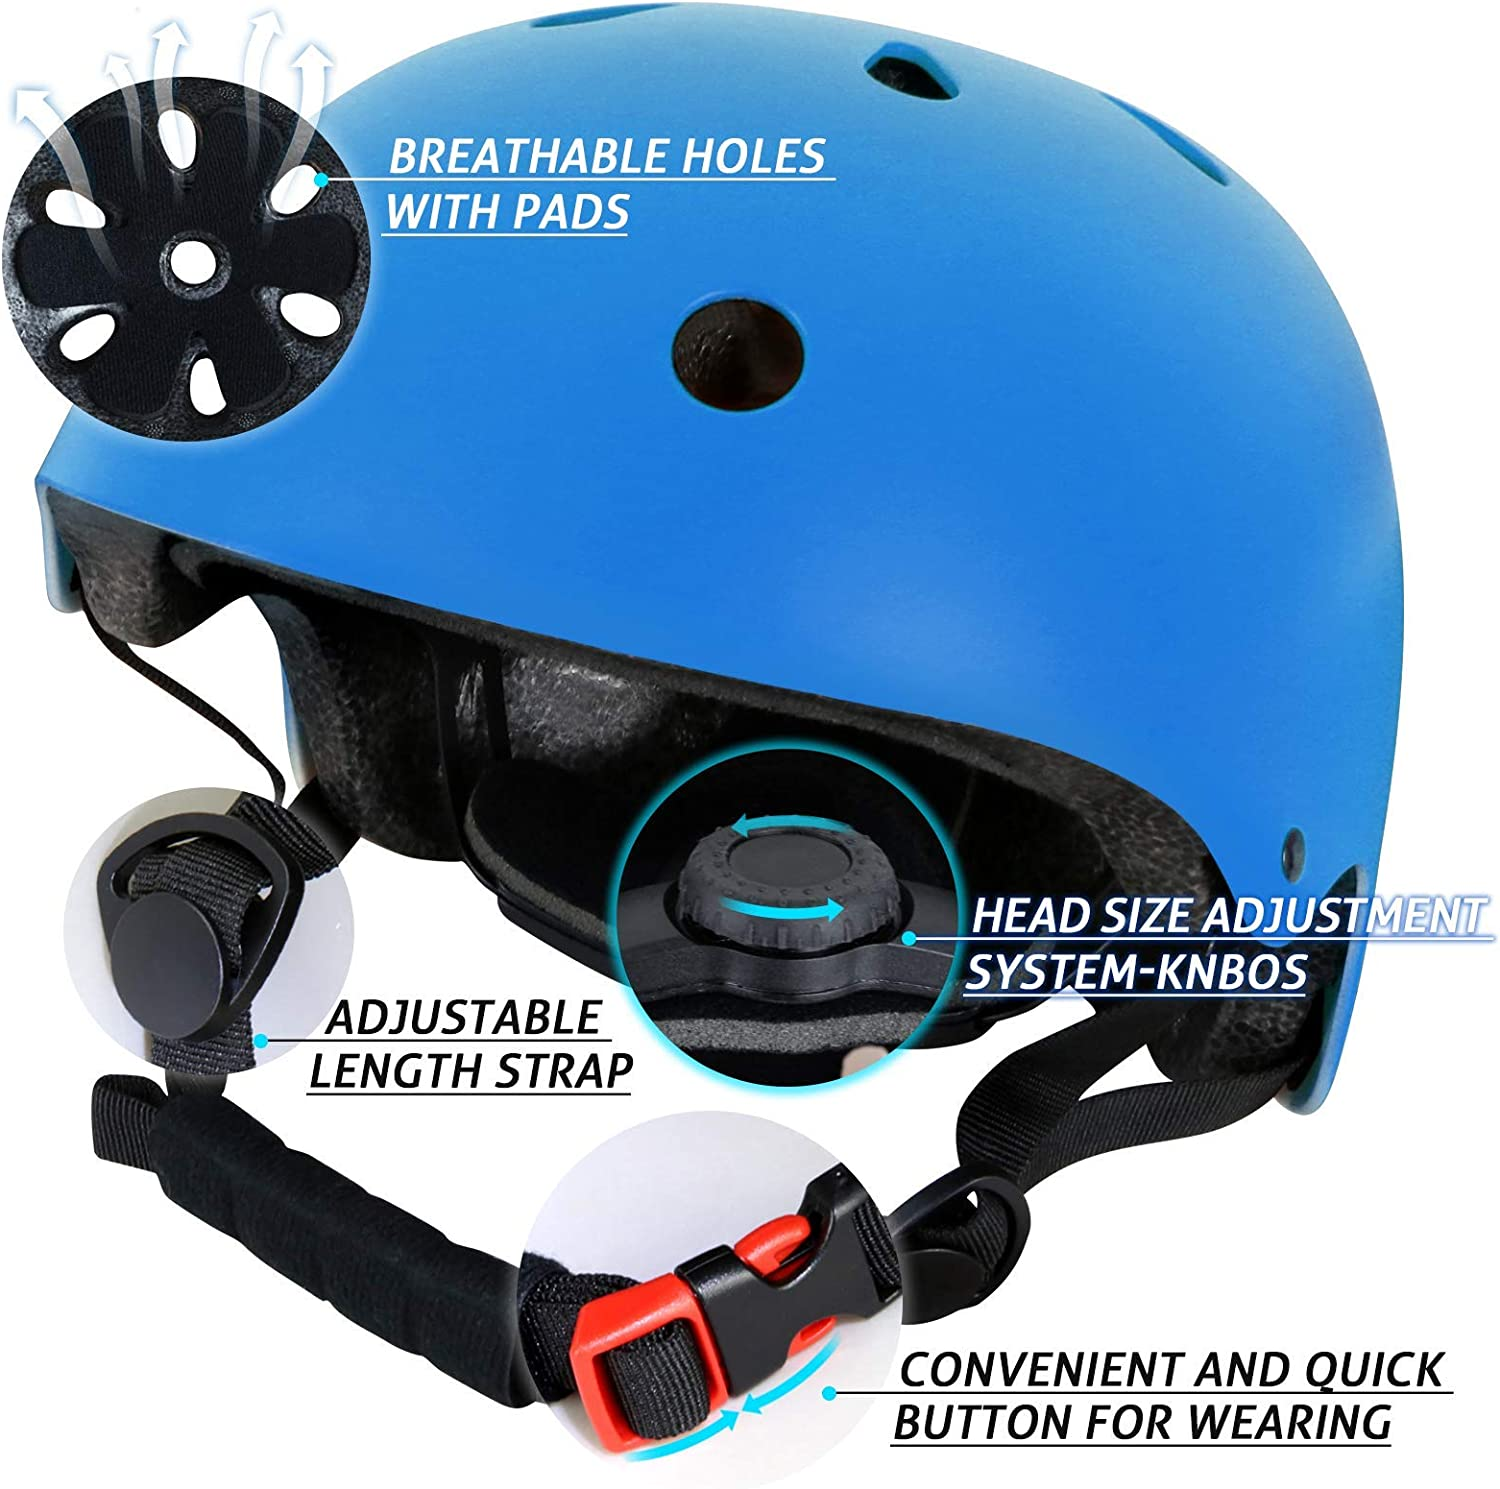 Kids Youth Toddler Helmet Adjustable Protective Gear Set with Knee Pads Elbow Pads Wrist Guards for Skateboard Roller Skating Scooter Cycling CRZKO Kids Helmet and Knee Pads Set